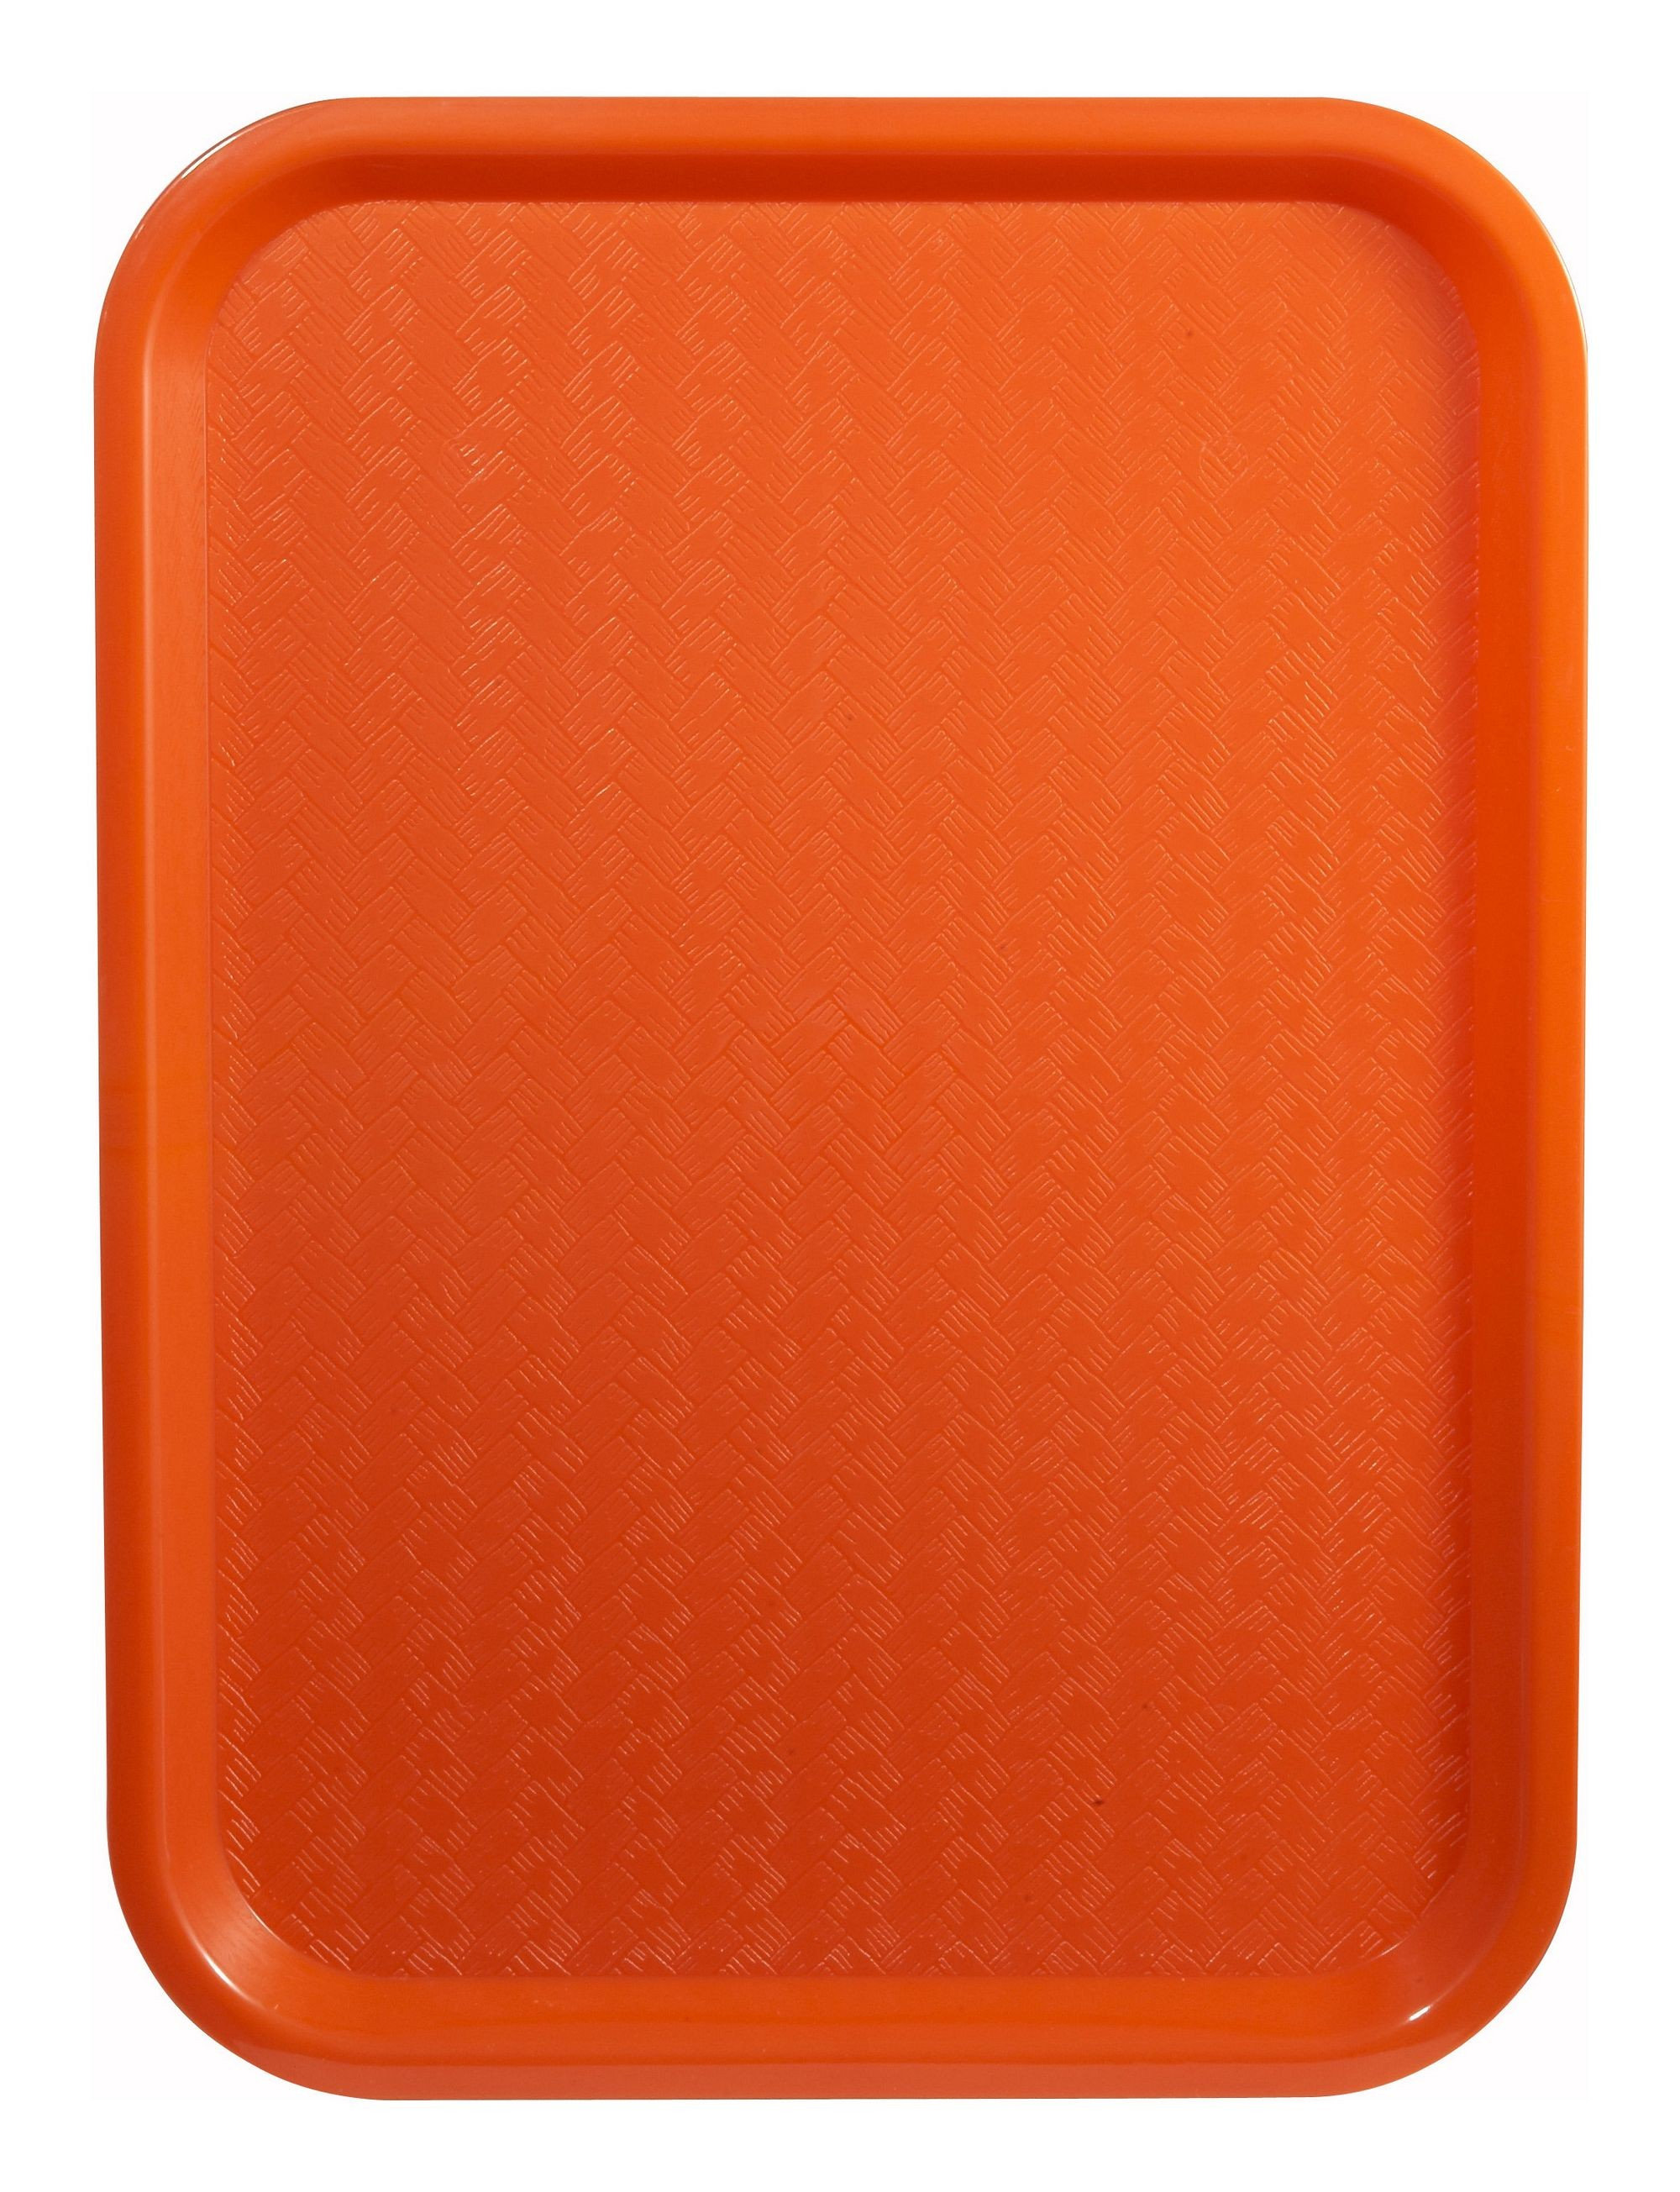 Premium Plastic Fast Food Tray 12 x 16 (Orange)